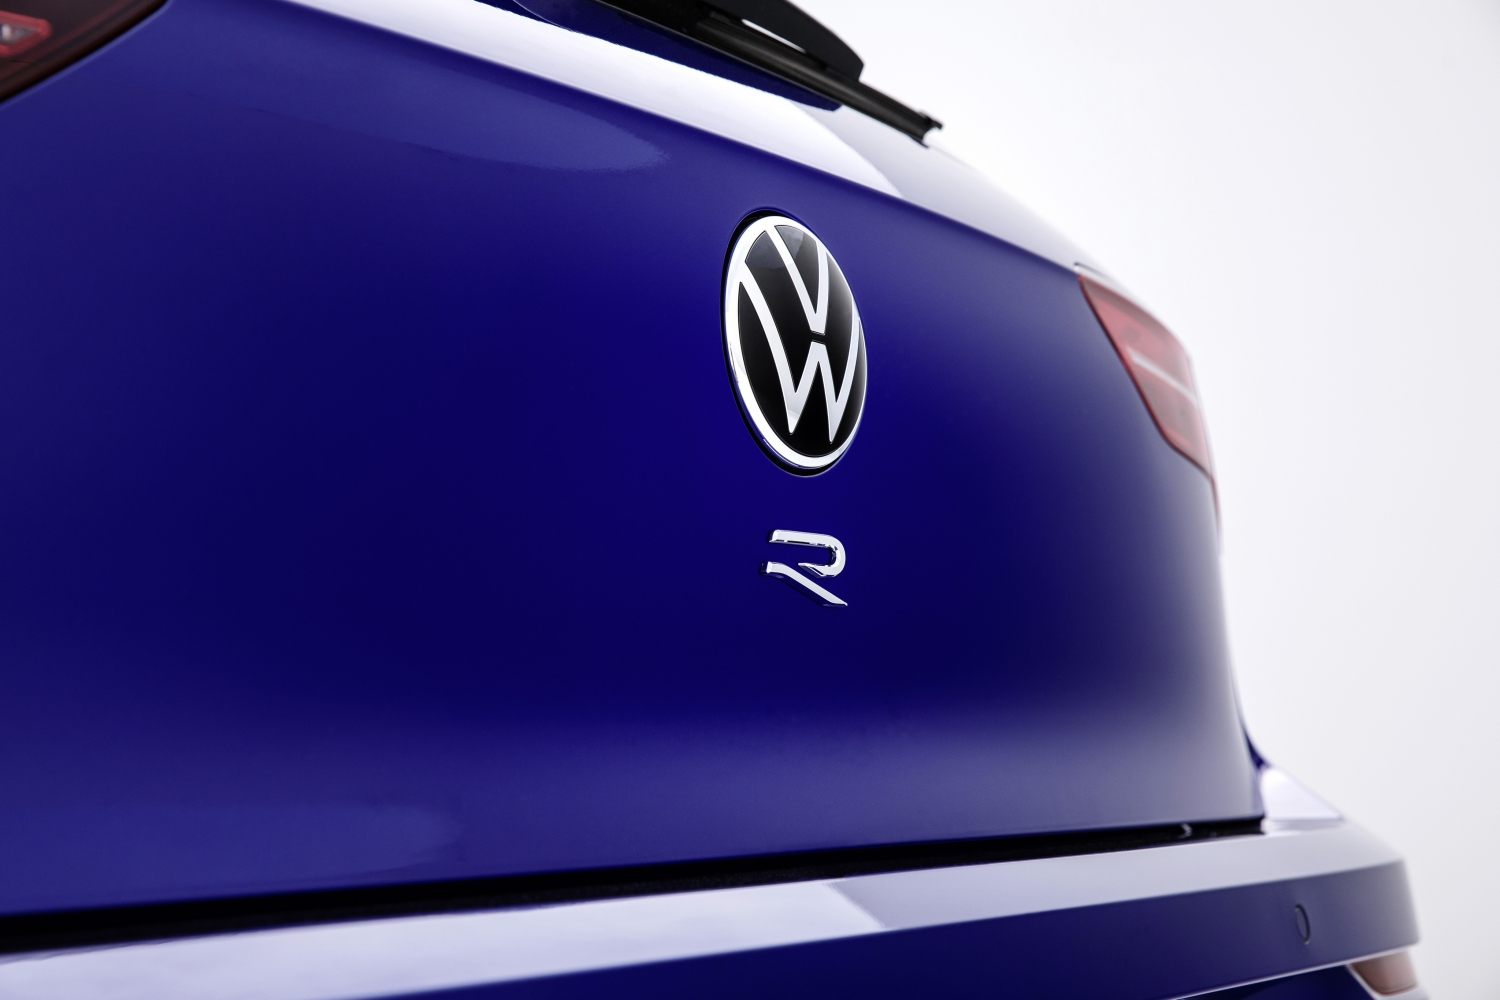 The_new_Volkswagen_Golf_R-Small-12423.jpg